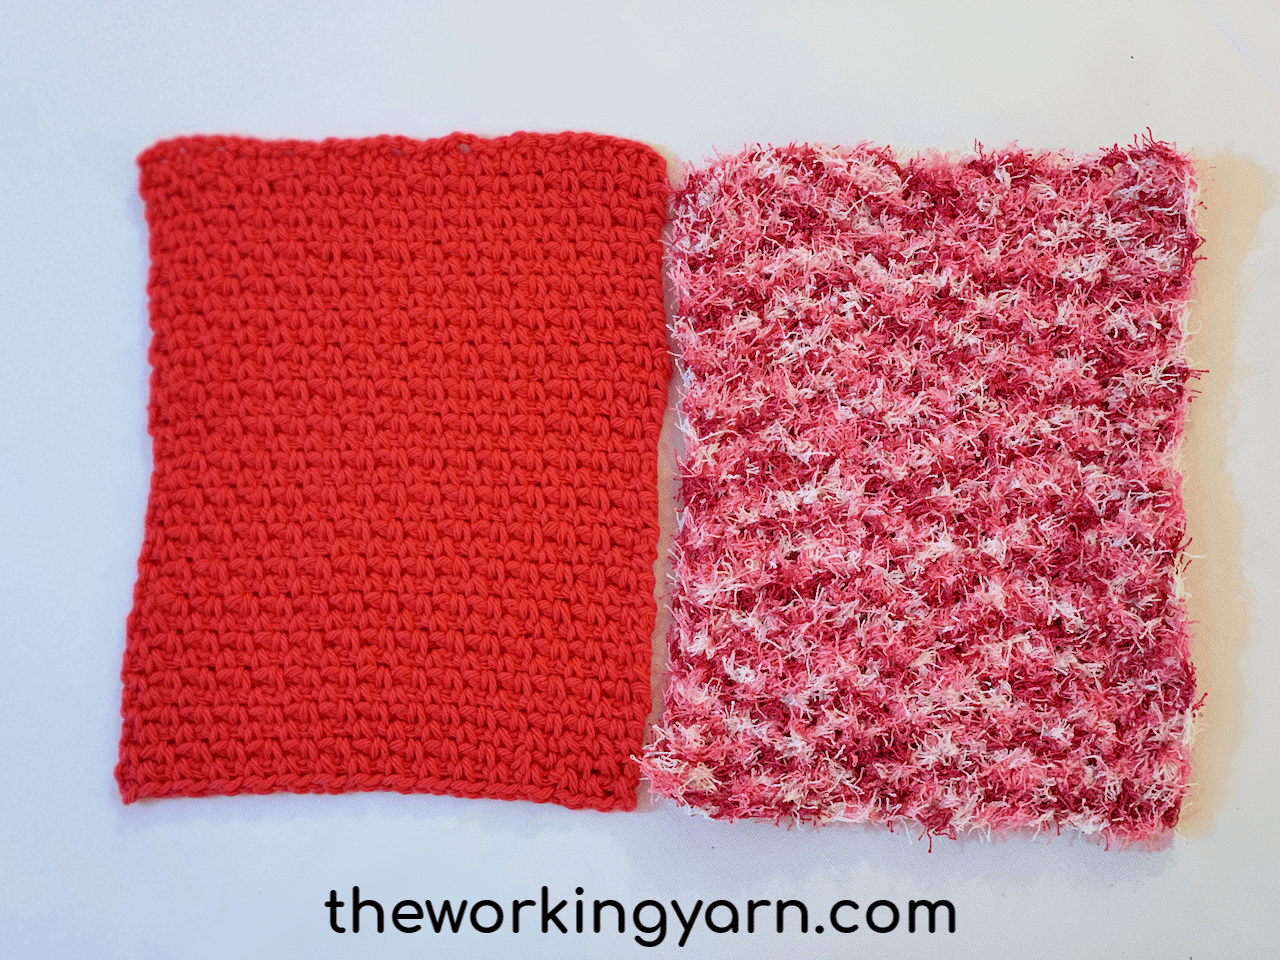 Crochet Dishcloths In 2 Ways The Working Yarn